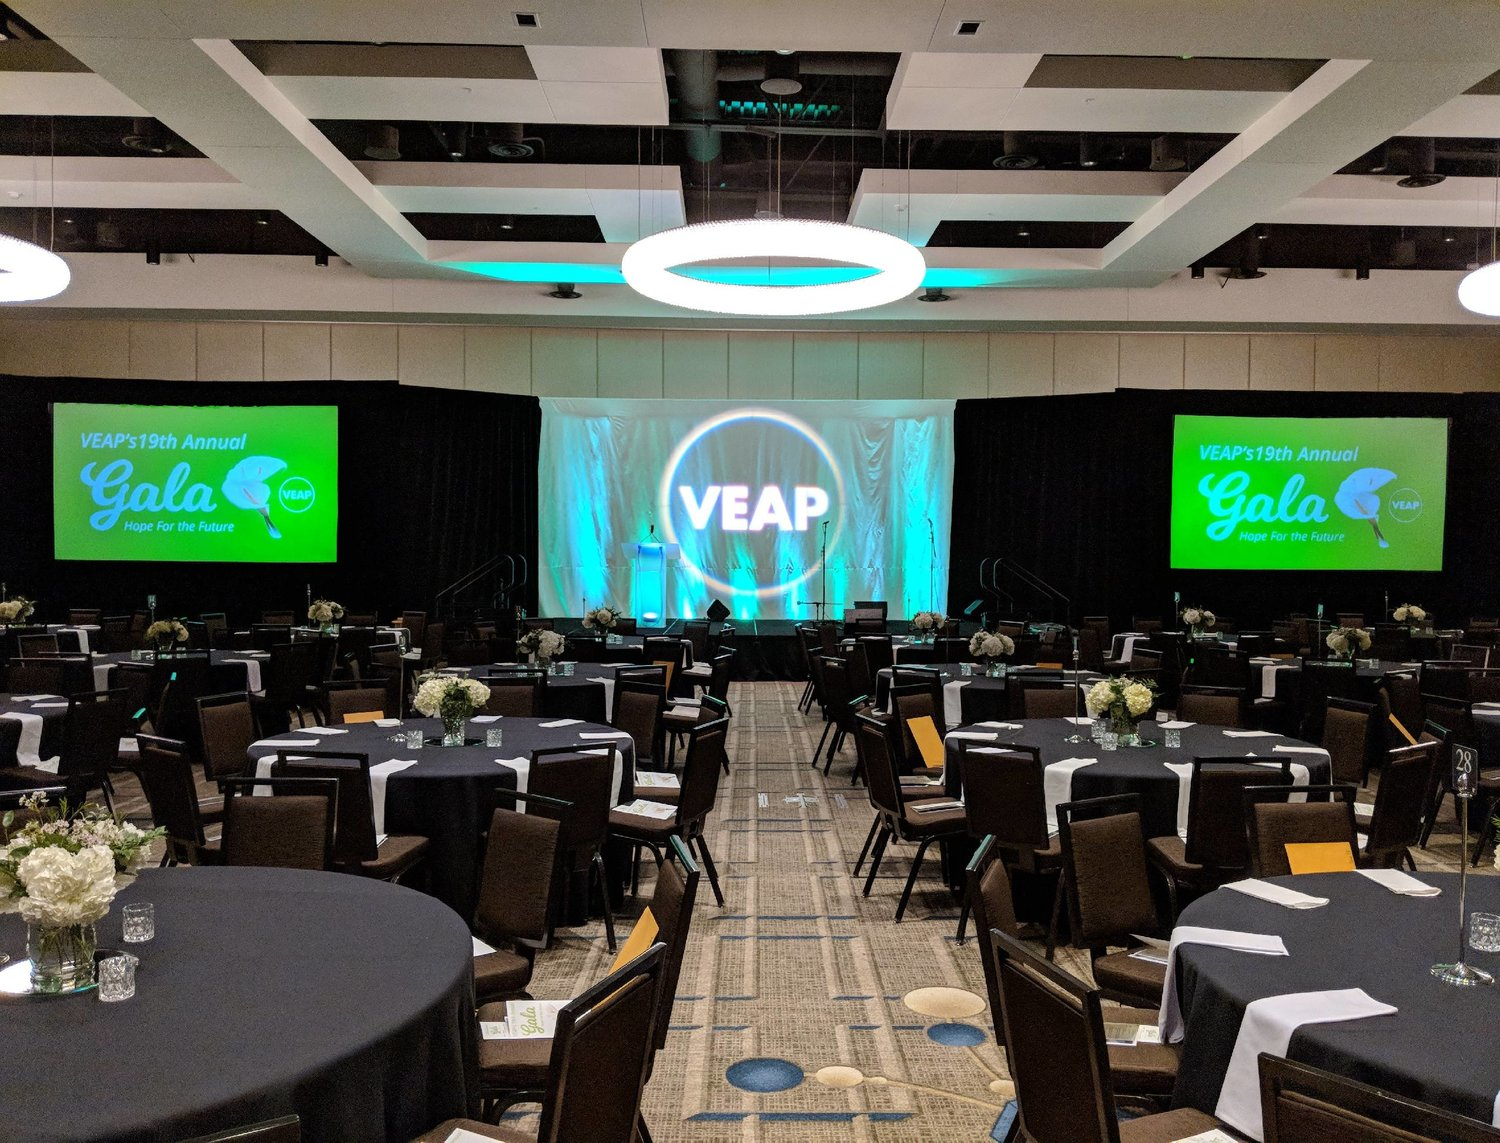 Picture of AV for You 8' x 14' Fastfold Screen with Drape rental